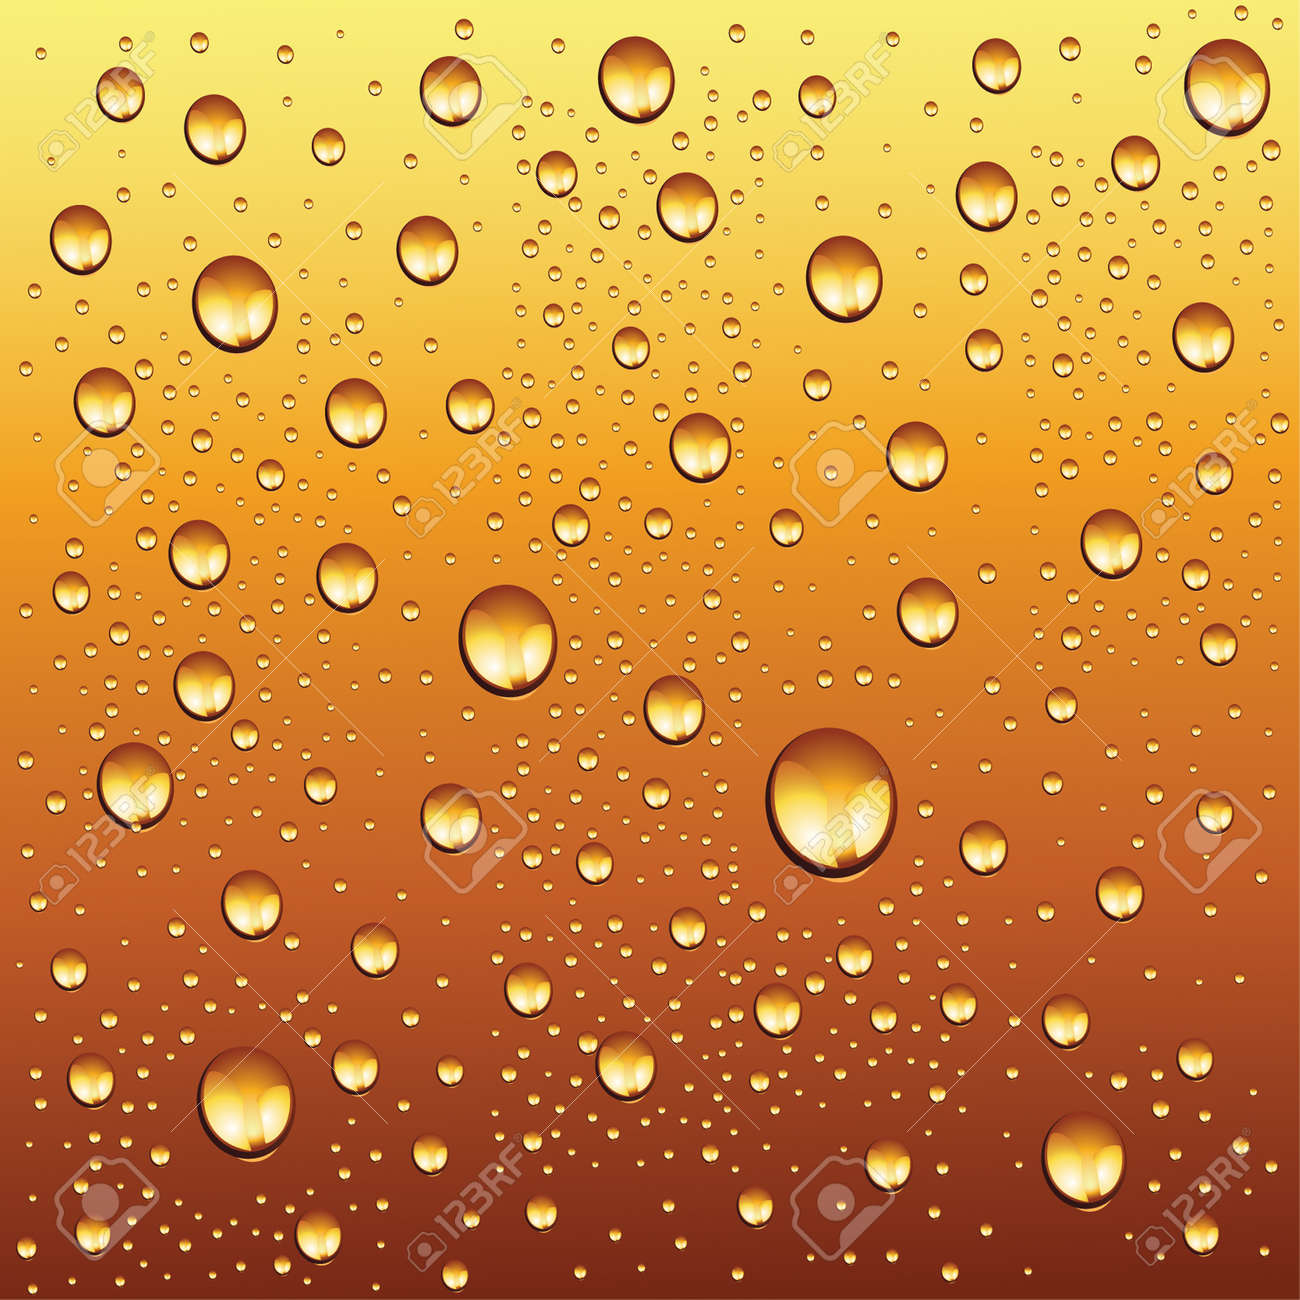 water drops on beer background Stock Vector - 4330268